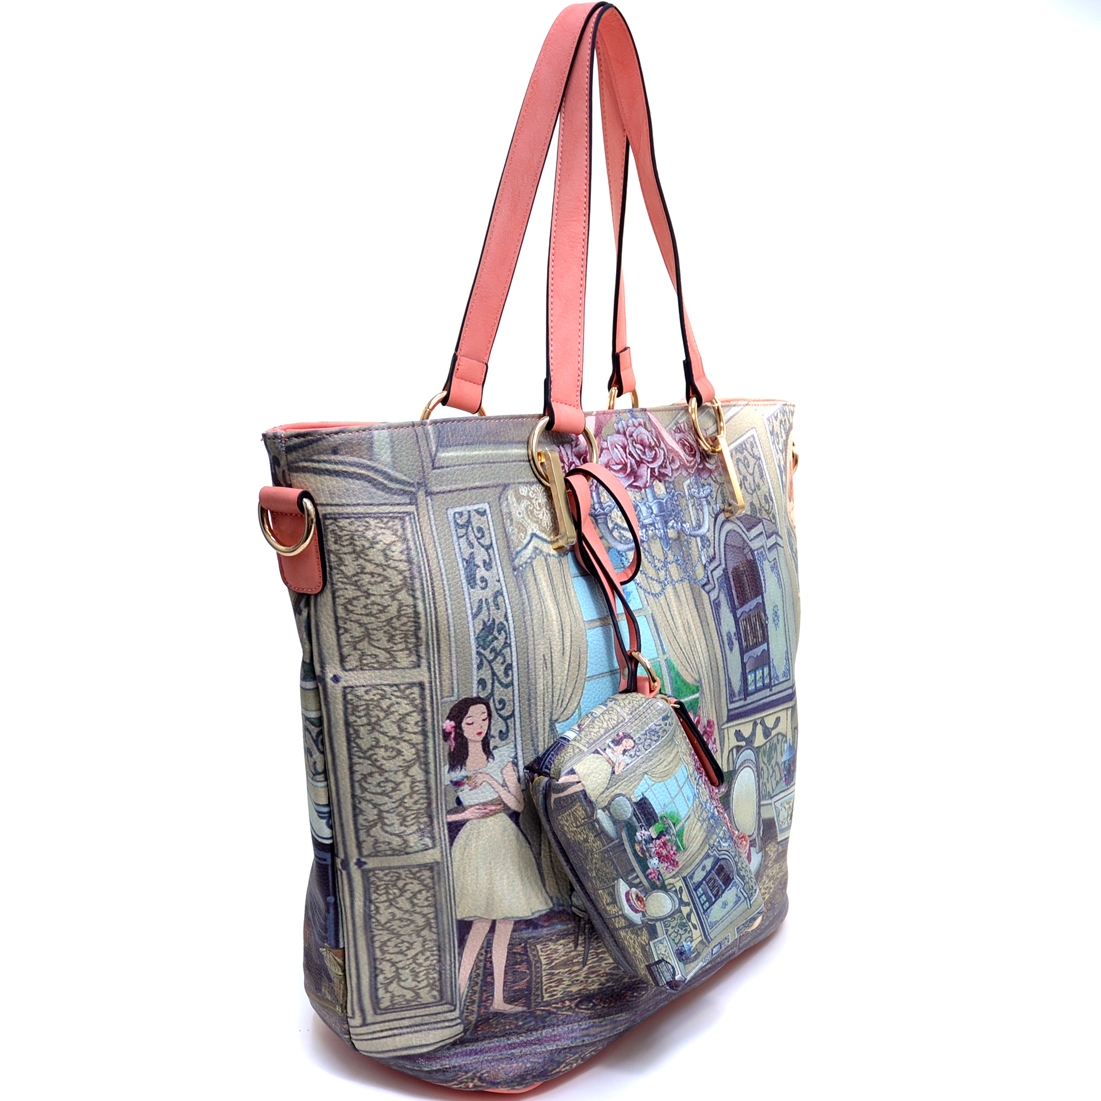 Fashion Tote Bag with Vintage Lady Print and Coin Purse